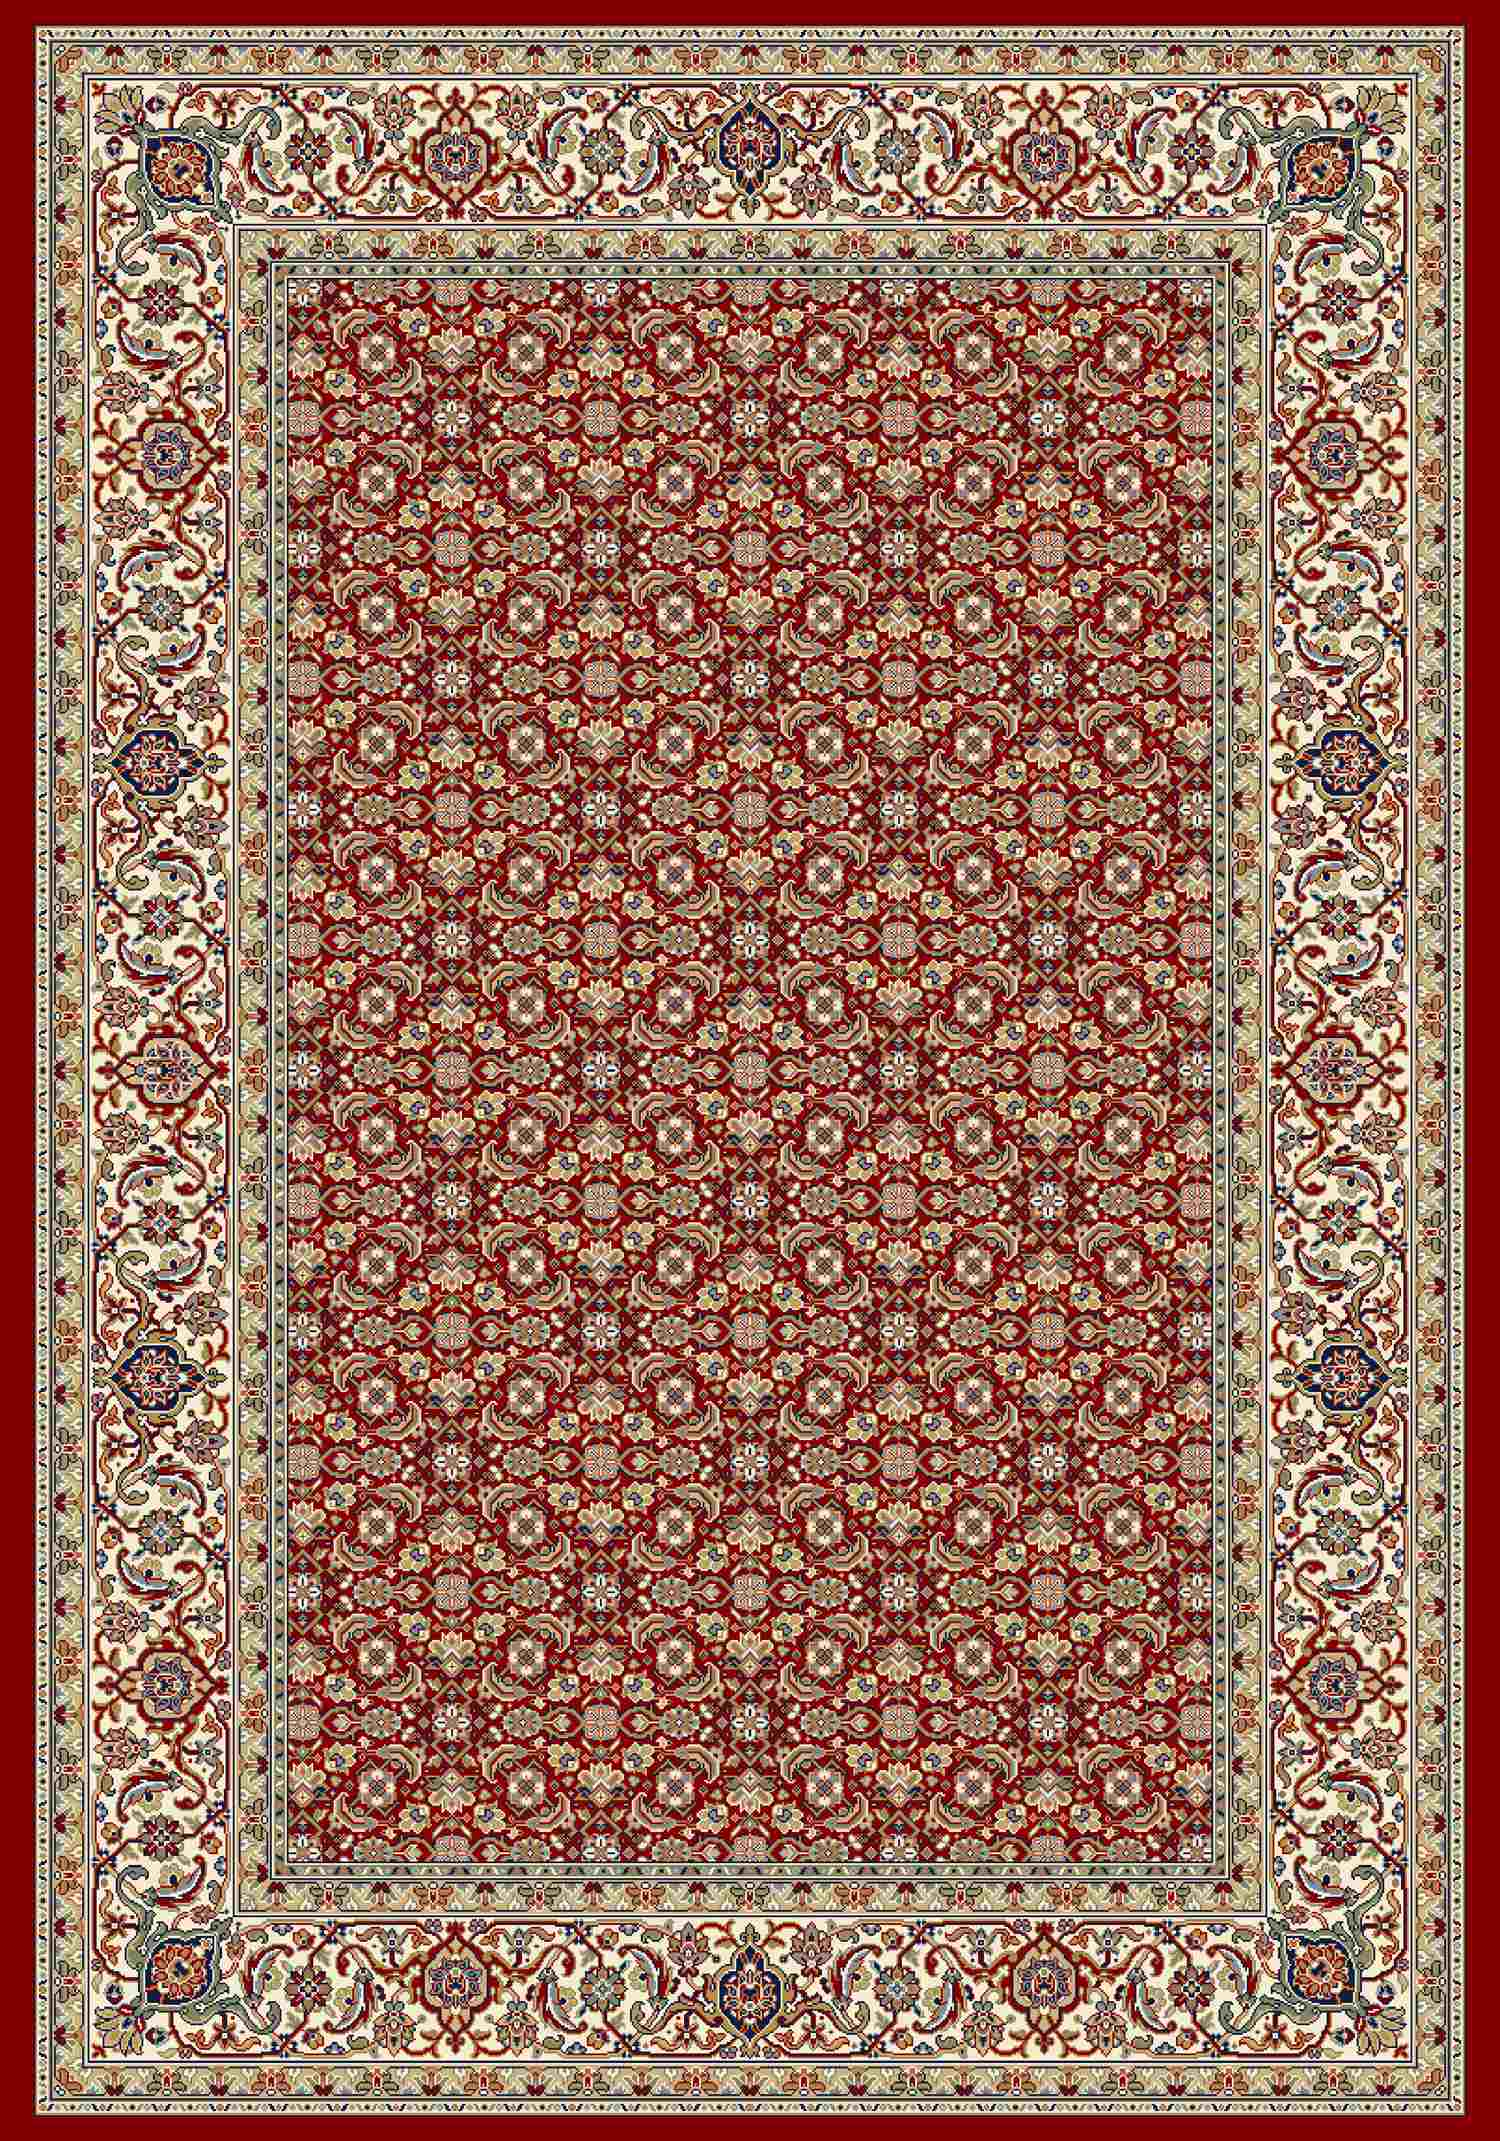 Dynamic Rugs Ancient Garden Classic Red/ivory 57011 Area Rug